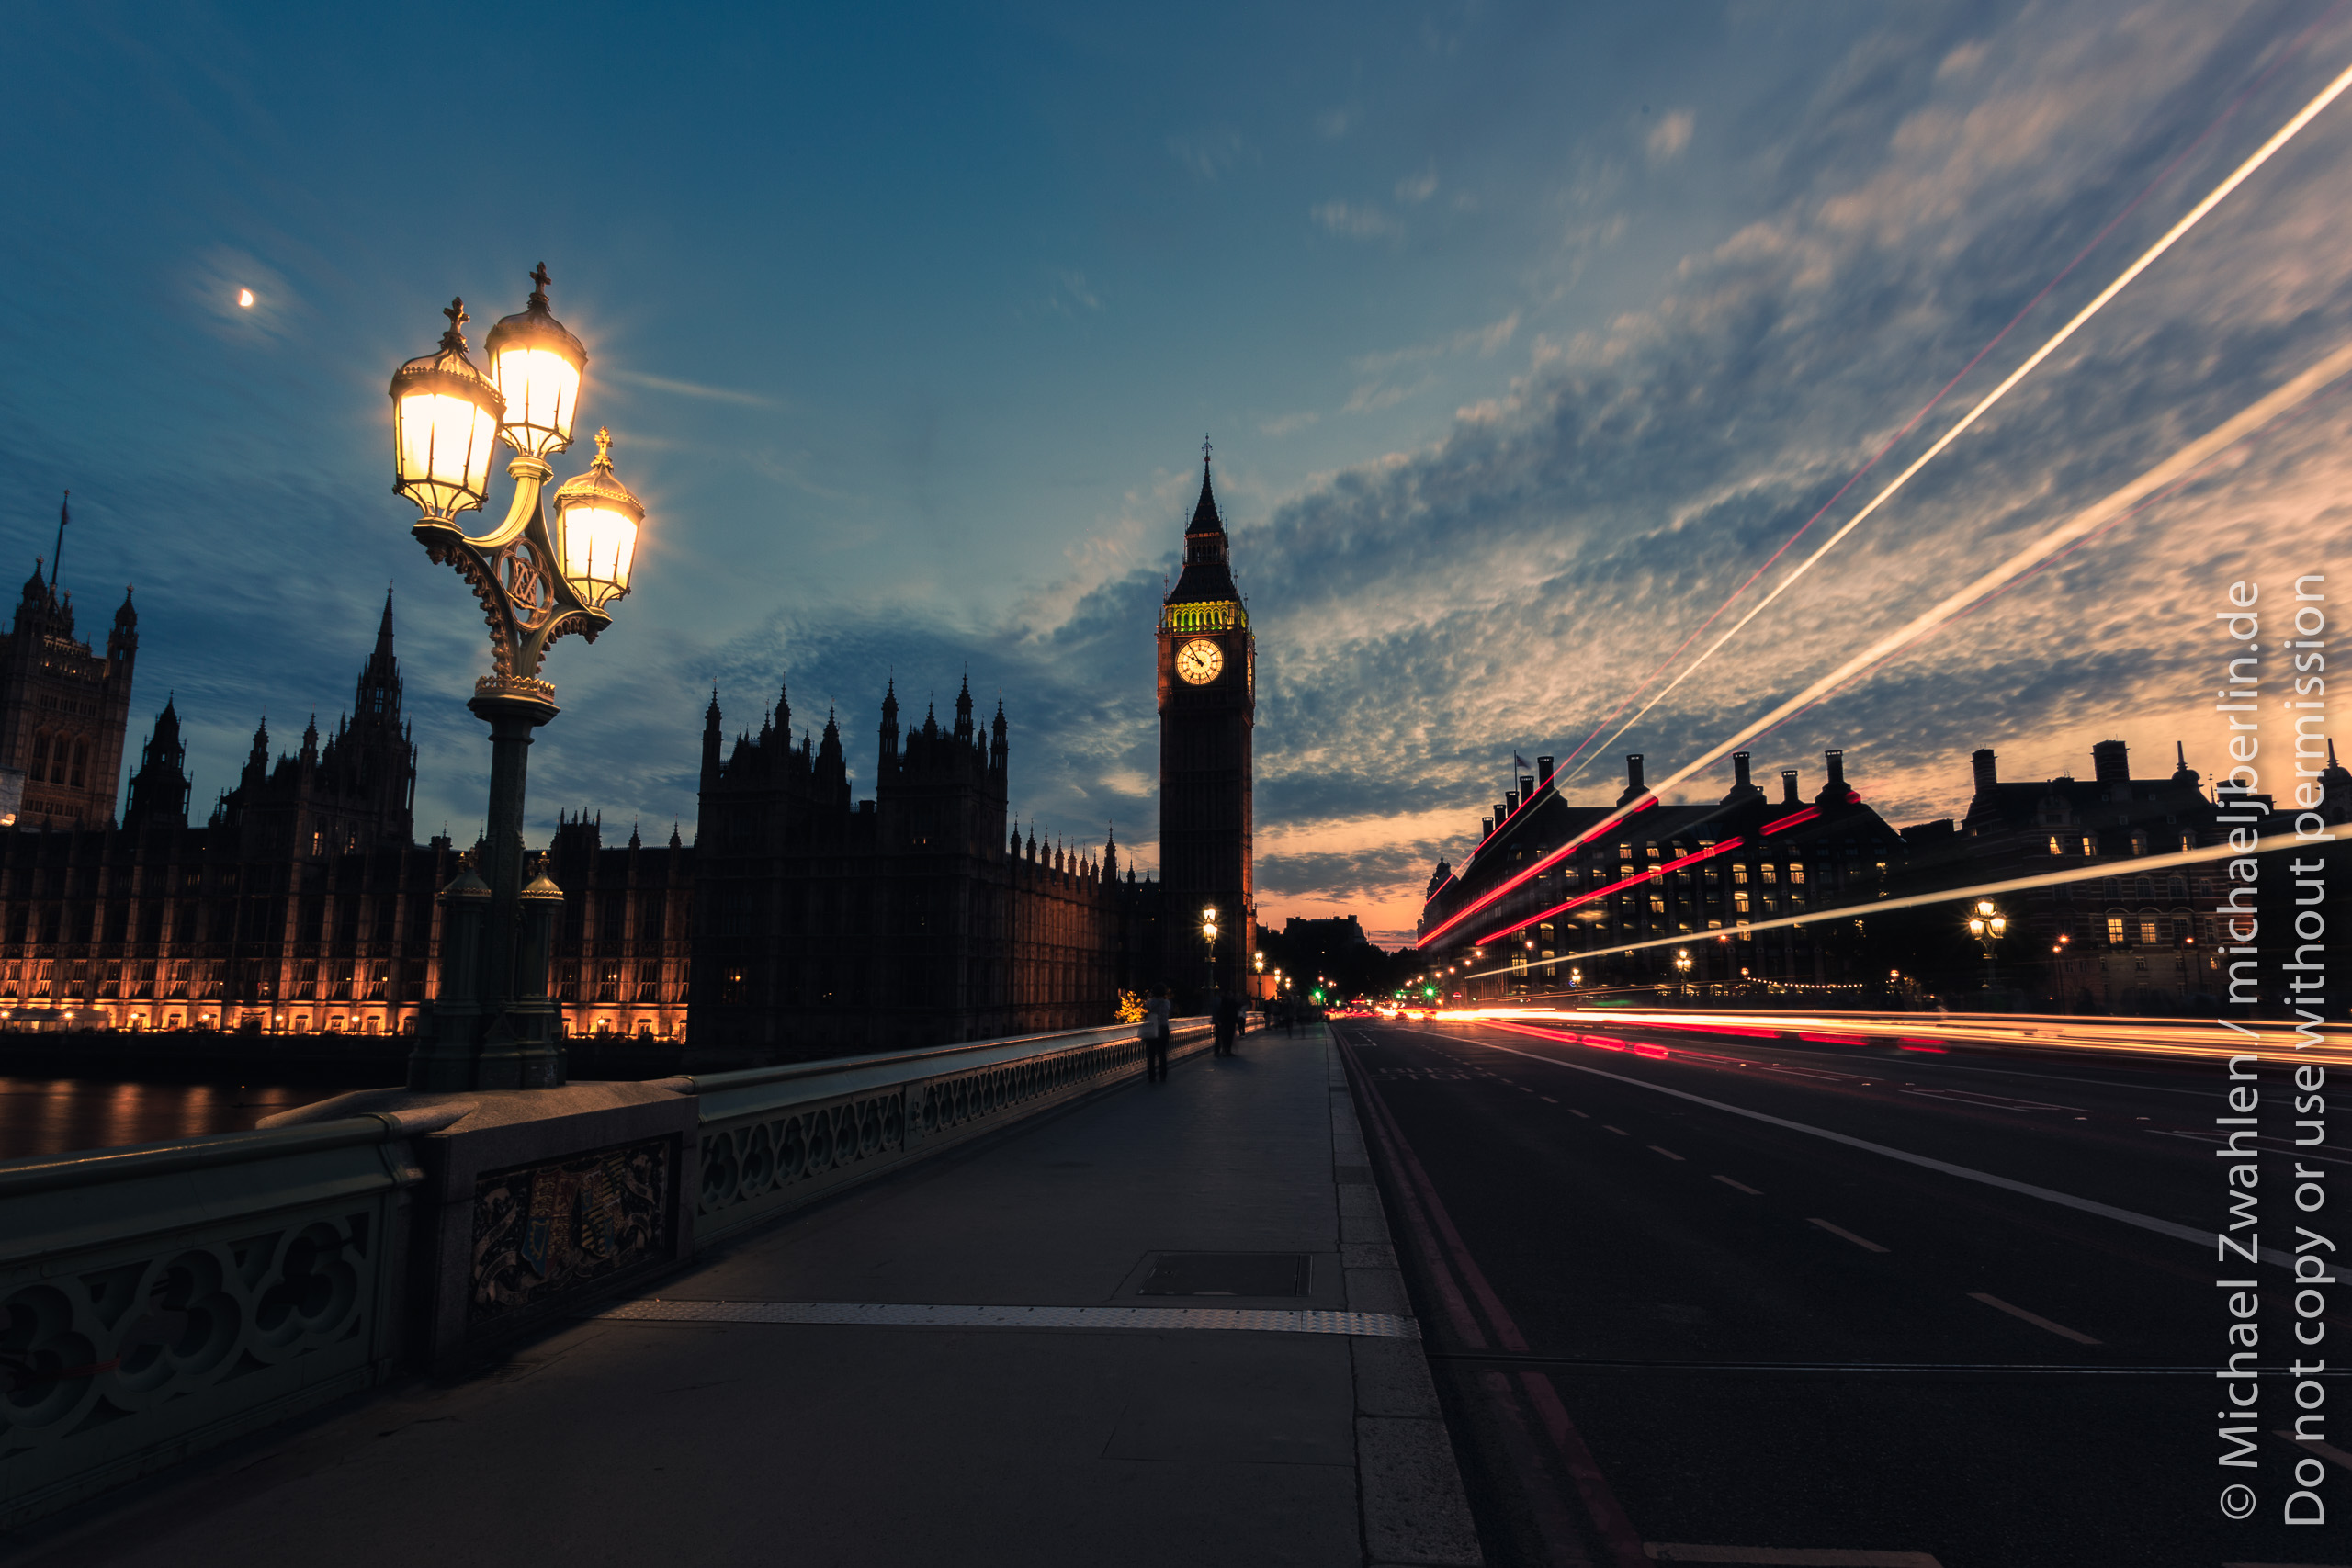 Light trails of passing cars and bus on Westminster Bridge, with Big Ben in the center, moon and clouds in the sunset sky. London, England, United Kingdom.